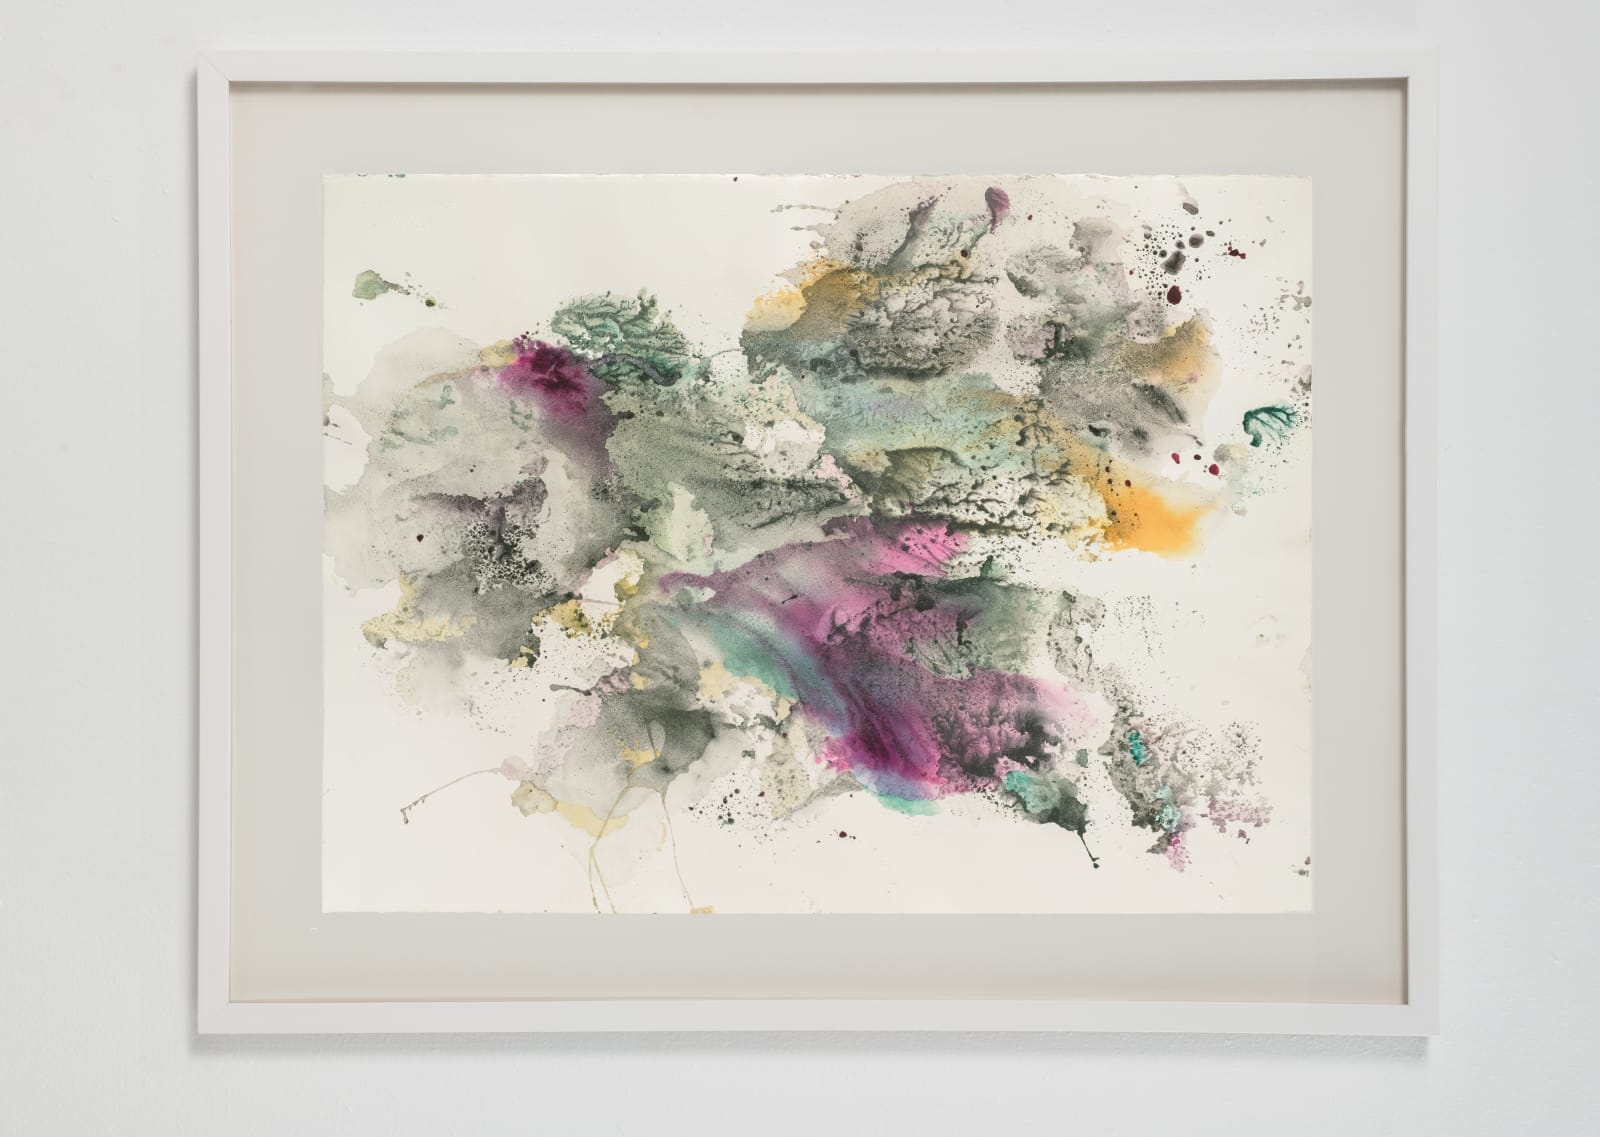 Michele Colburn Altostratus Prelude, 2020 Gunpowder and watercolors on Arches paper with deckled edges 55.9 x 76.2 cm, 22 x 30 in. (Frame not included) Photo: Lee Stalsworth